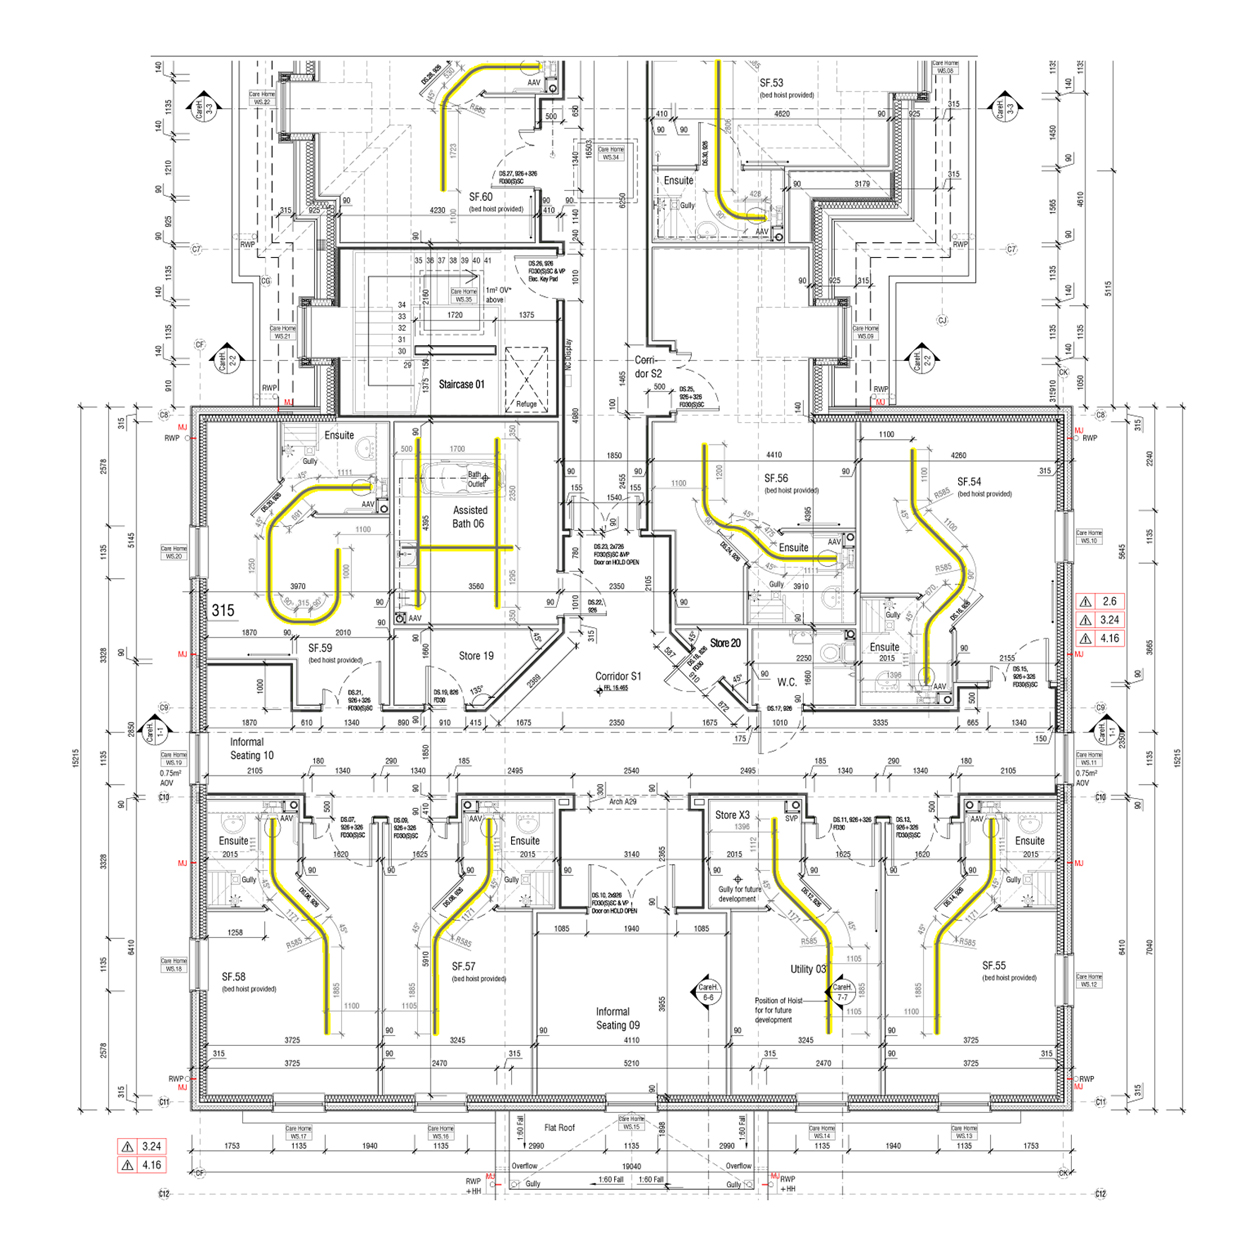 Ceiling hoist track design opemed for Retirement home plans